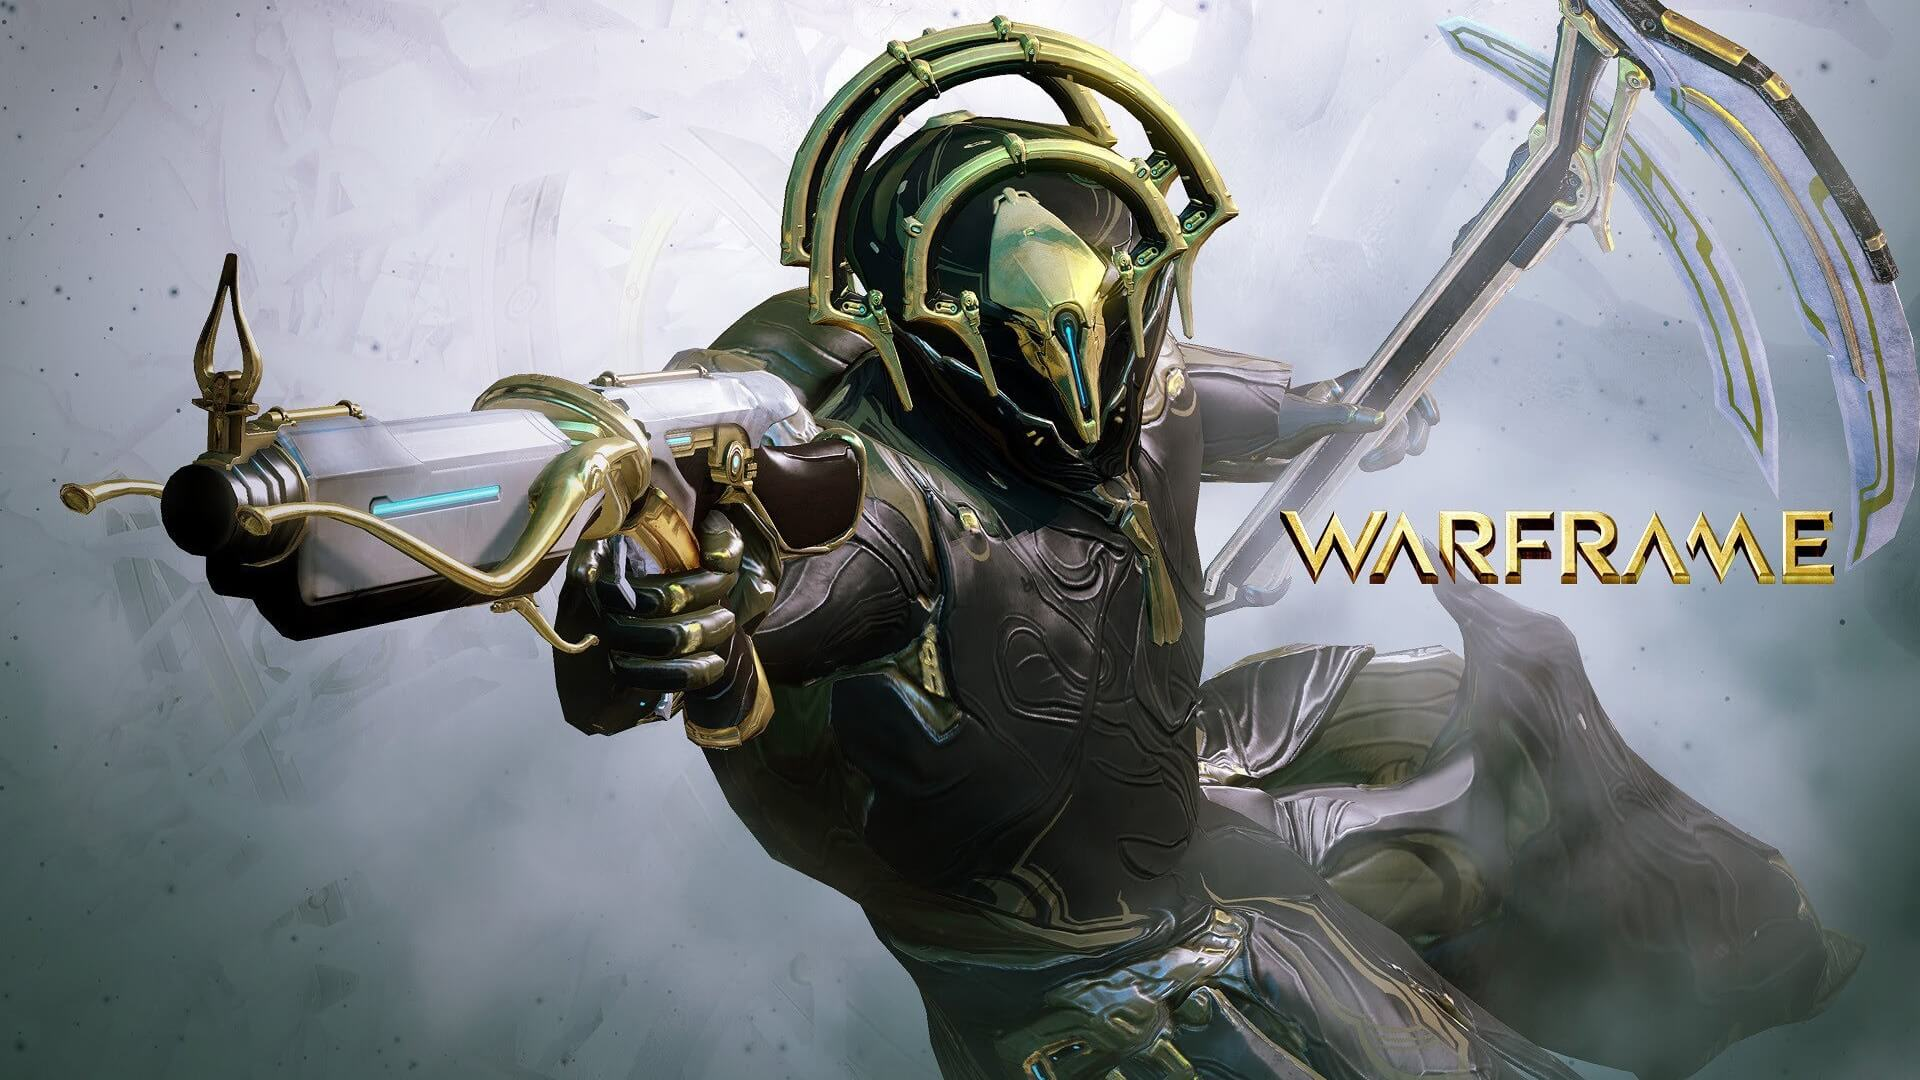 warframe wallpaper background